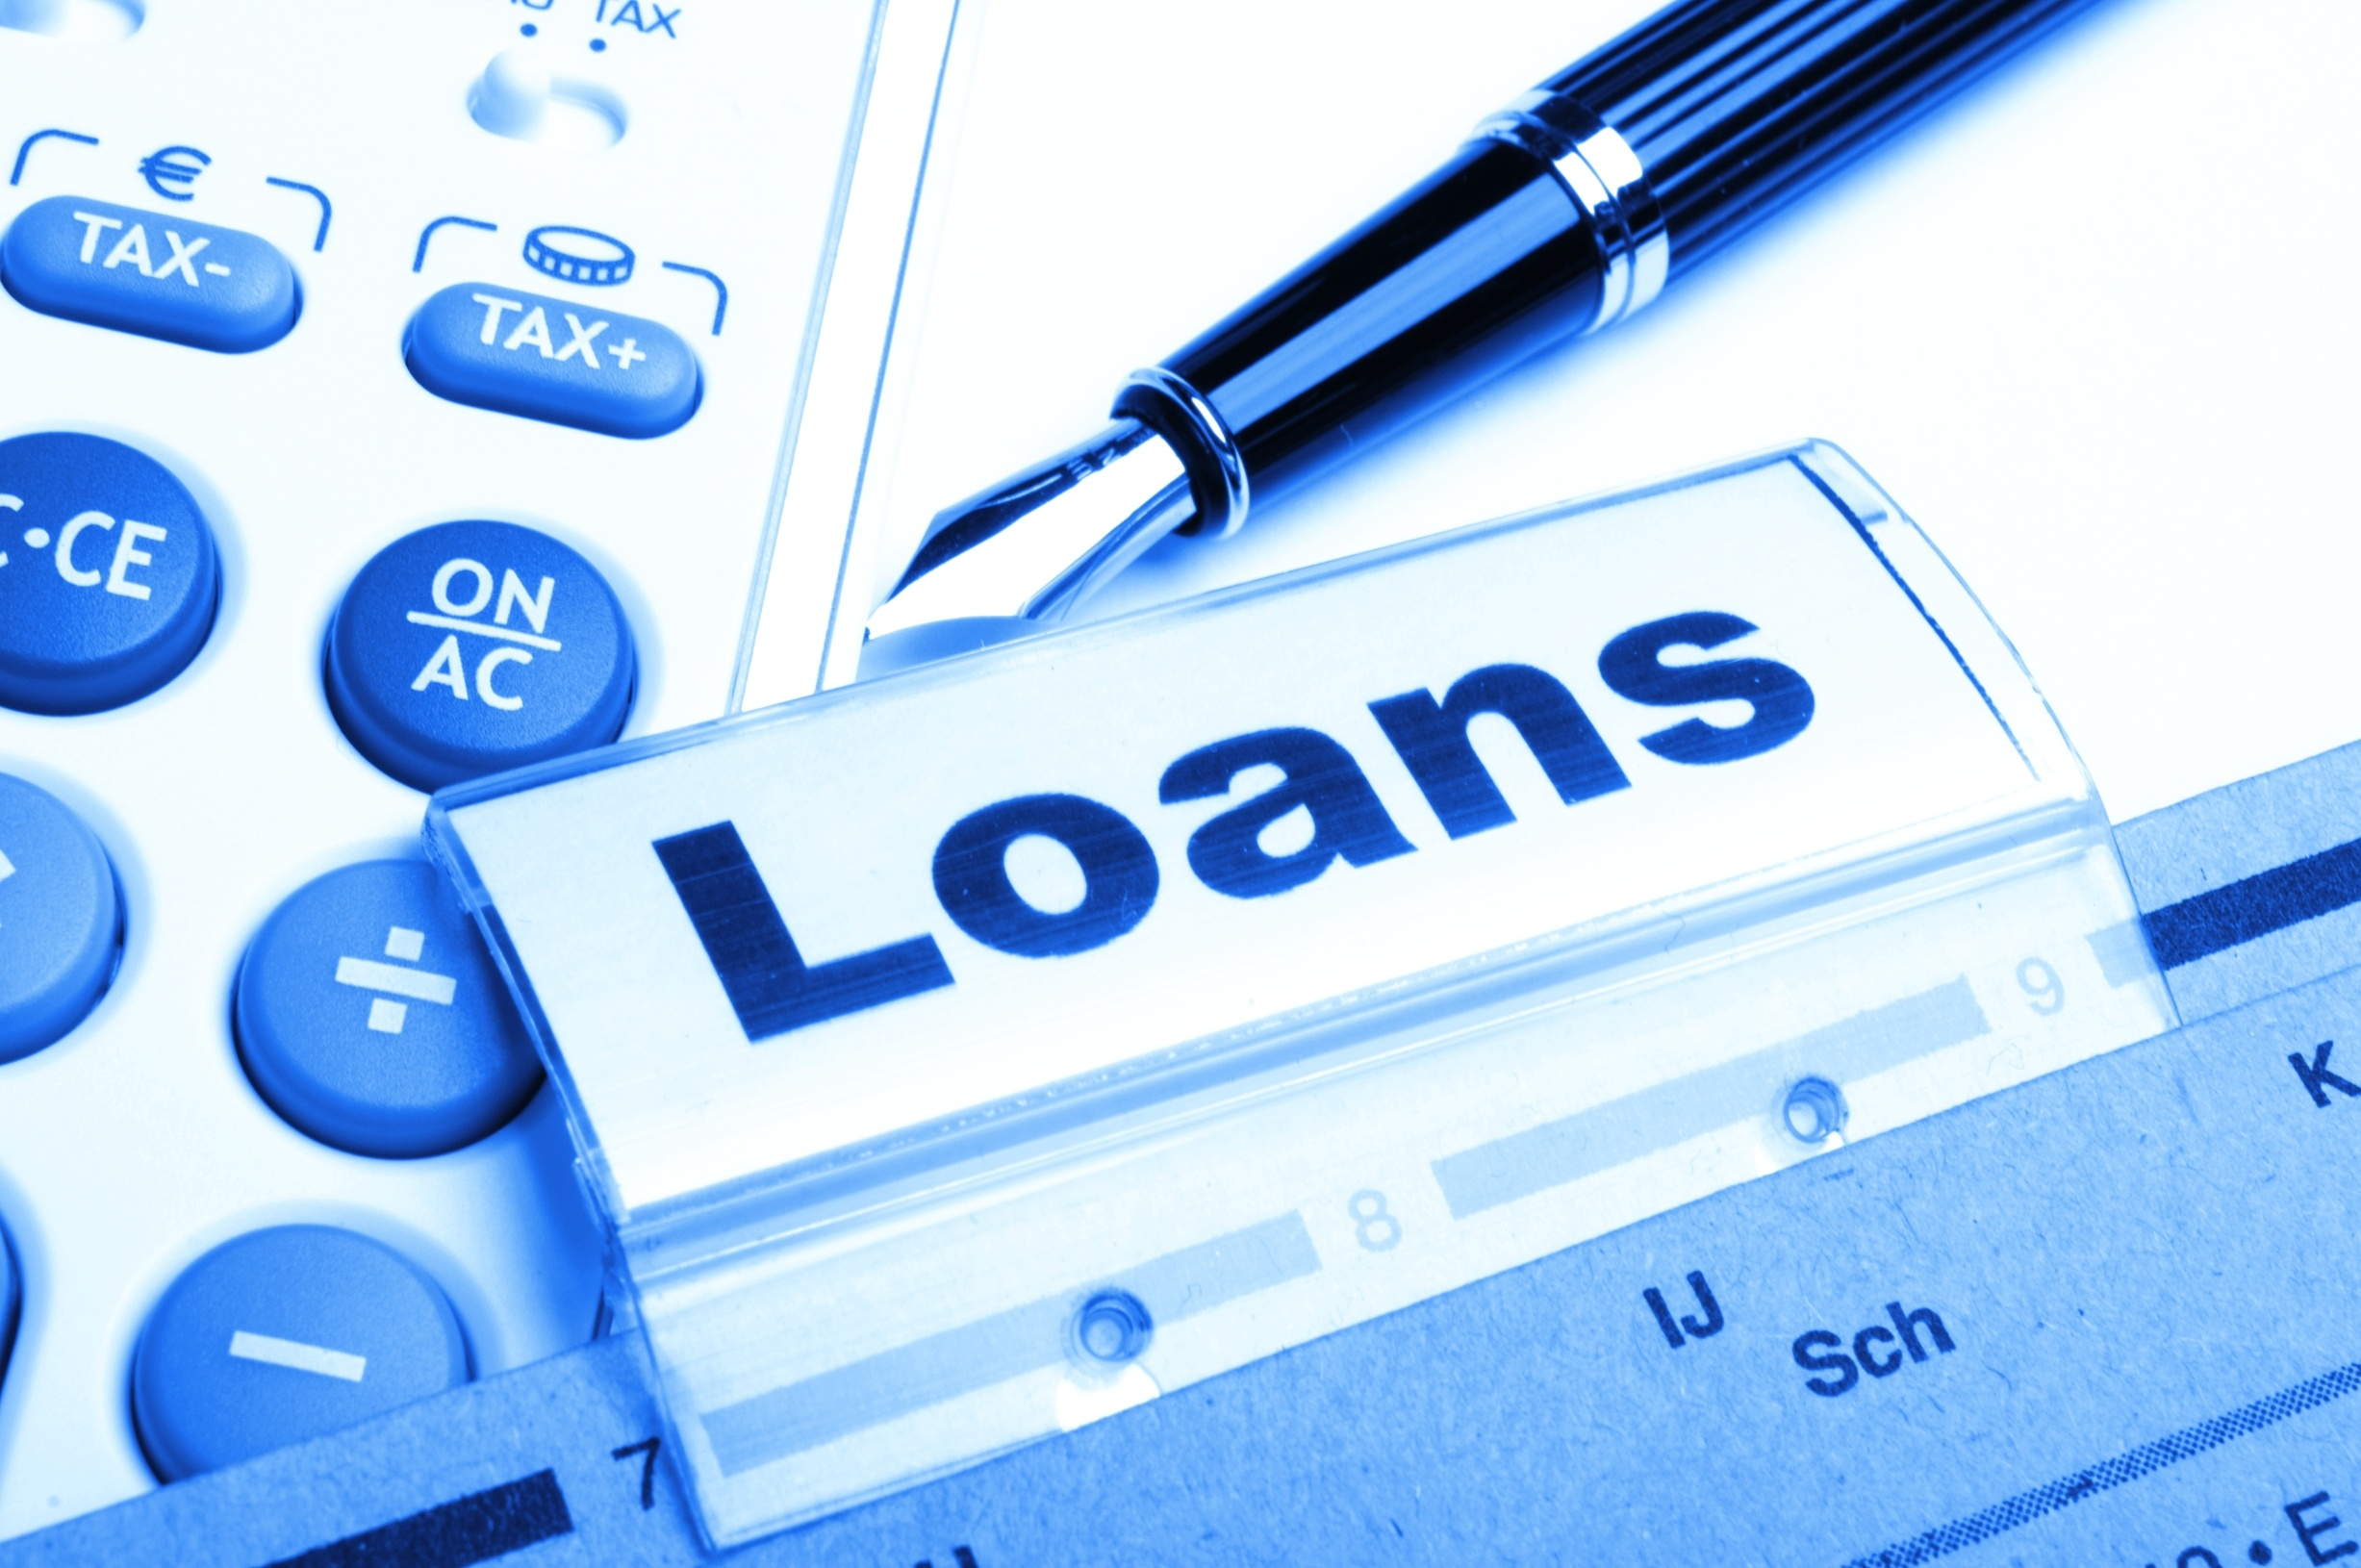 Get Most From The Personal Loans Online in Singapore